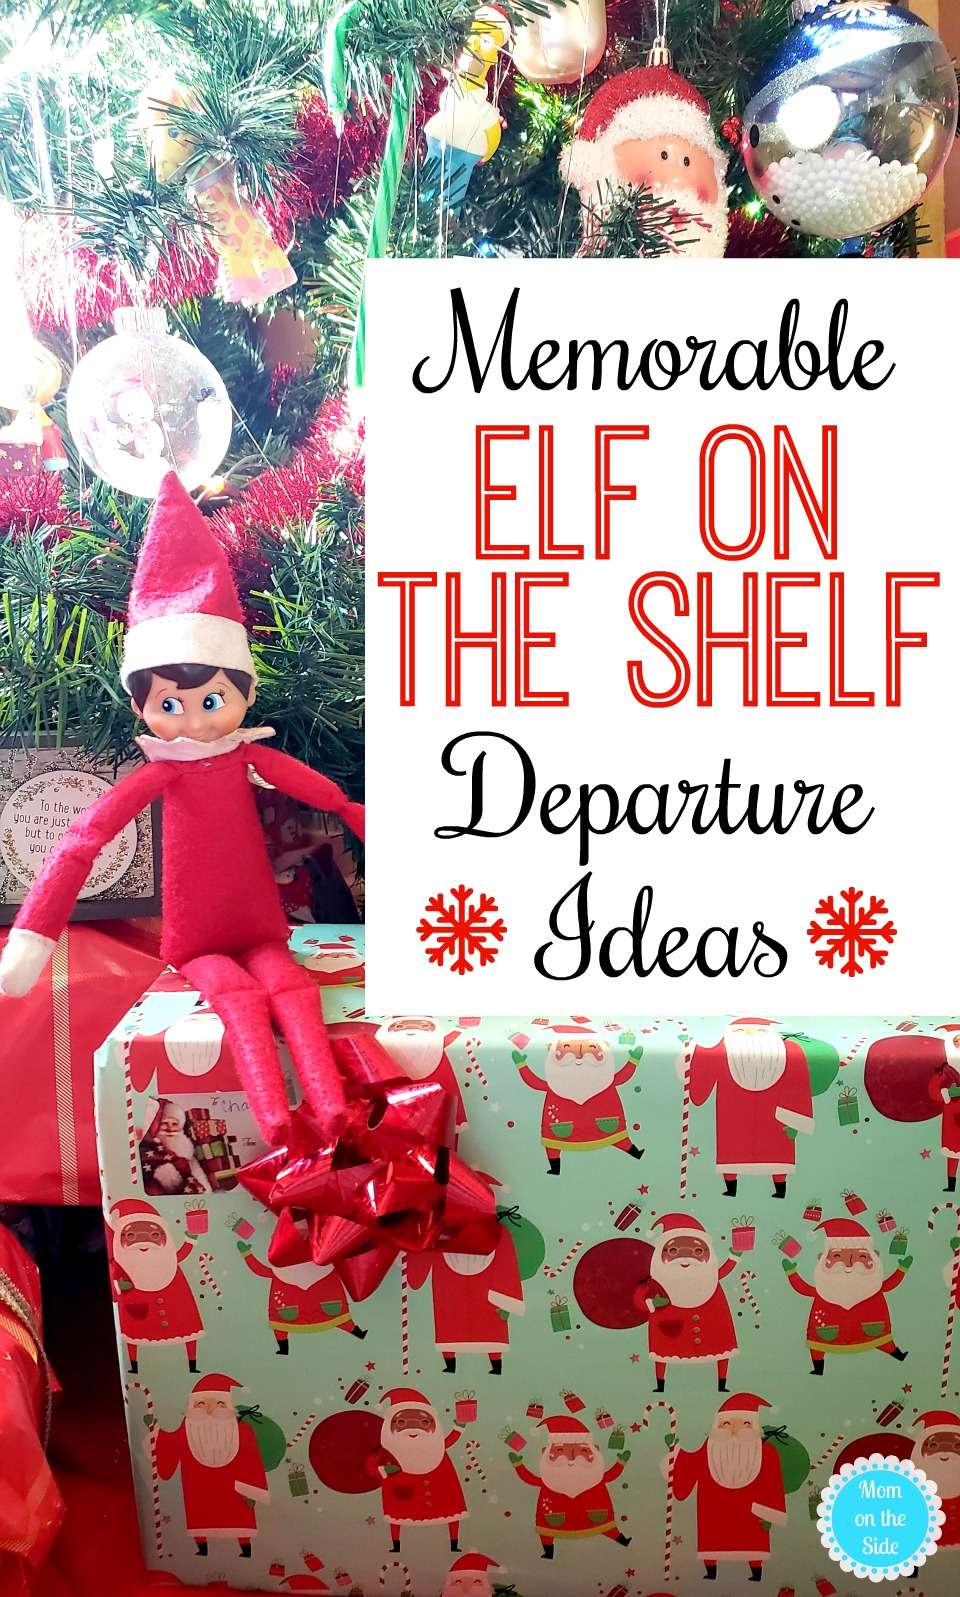 Elf On The Shelf: Elf On The Shelf Departure Ideas And Departure Letters